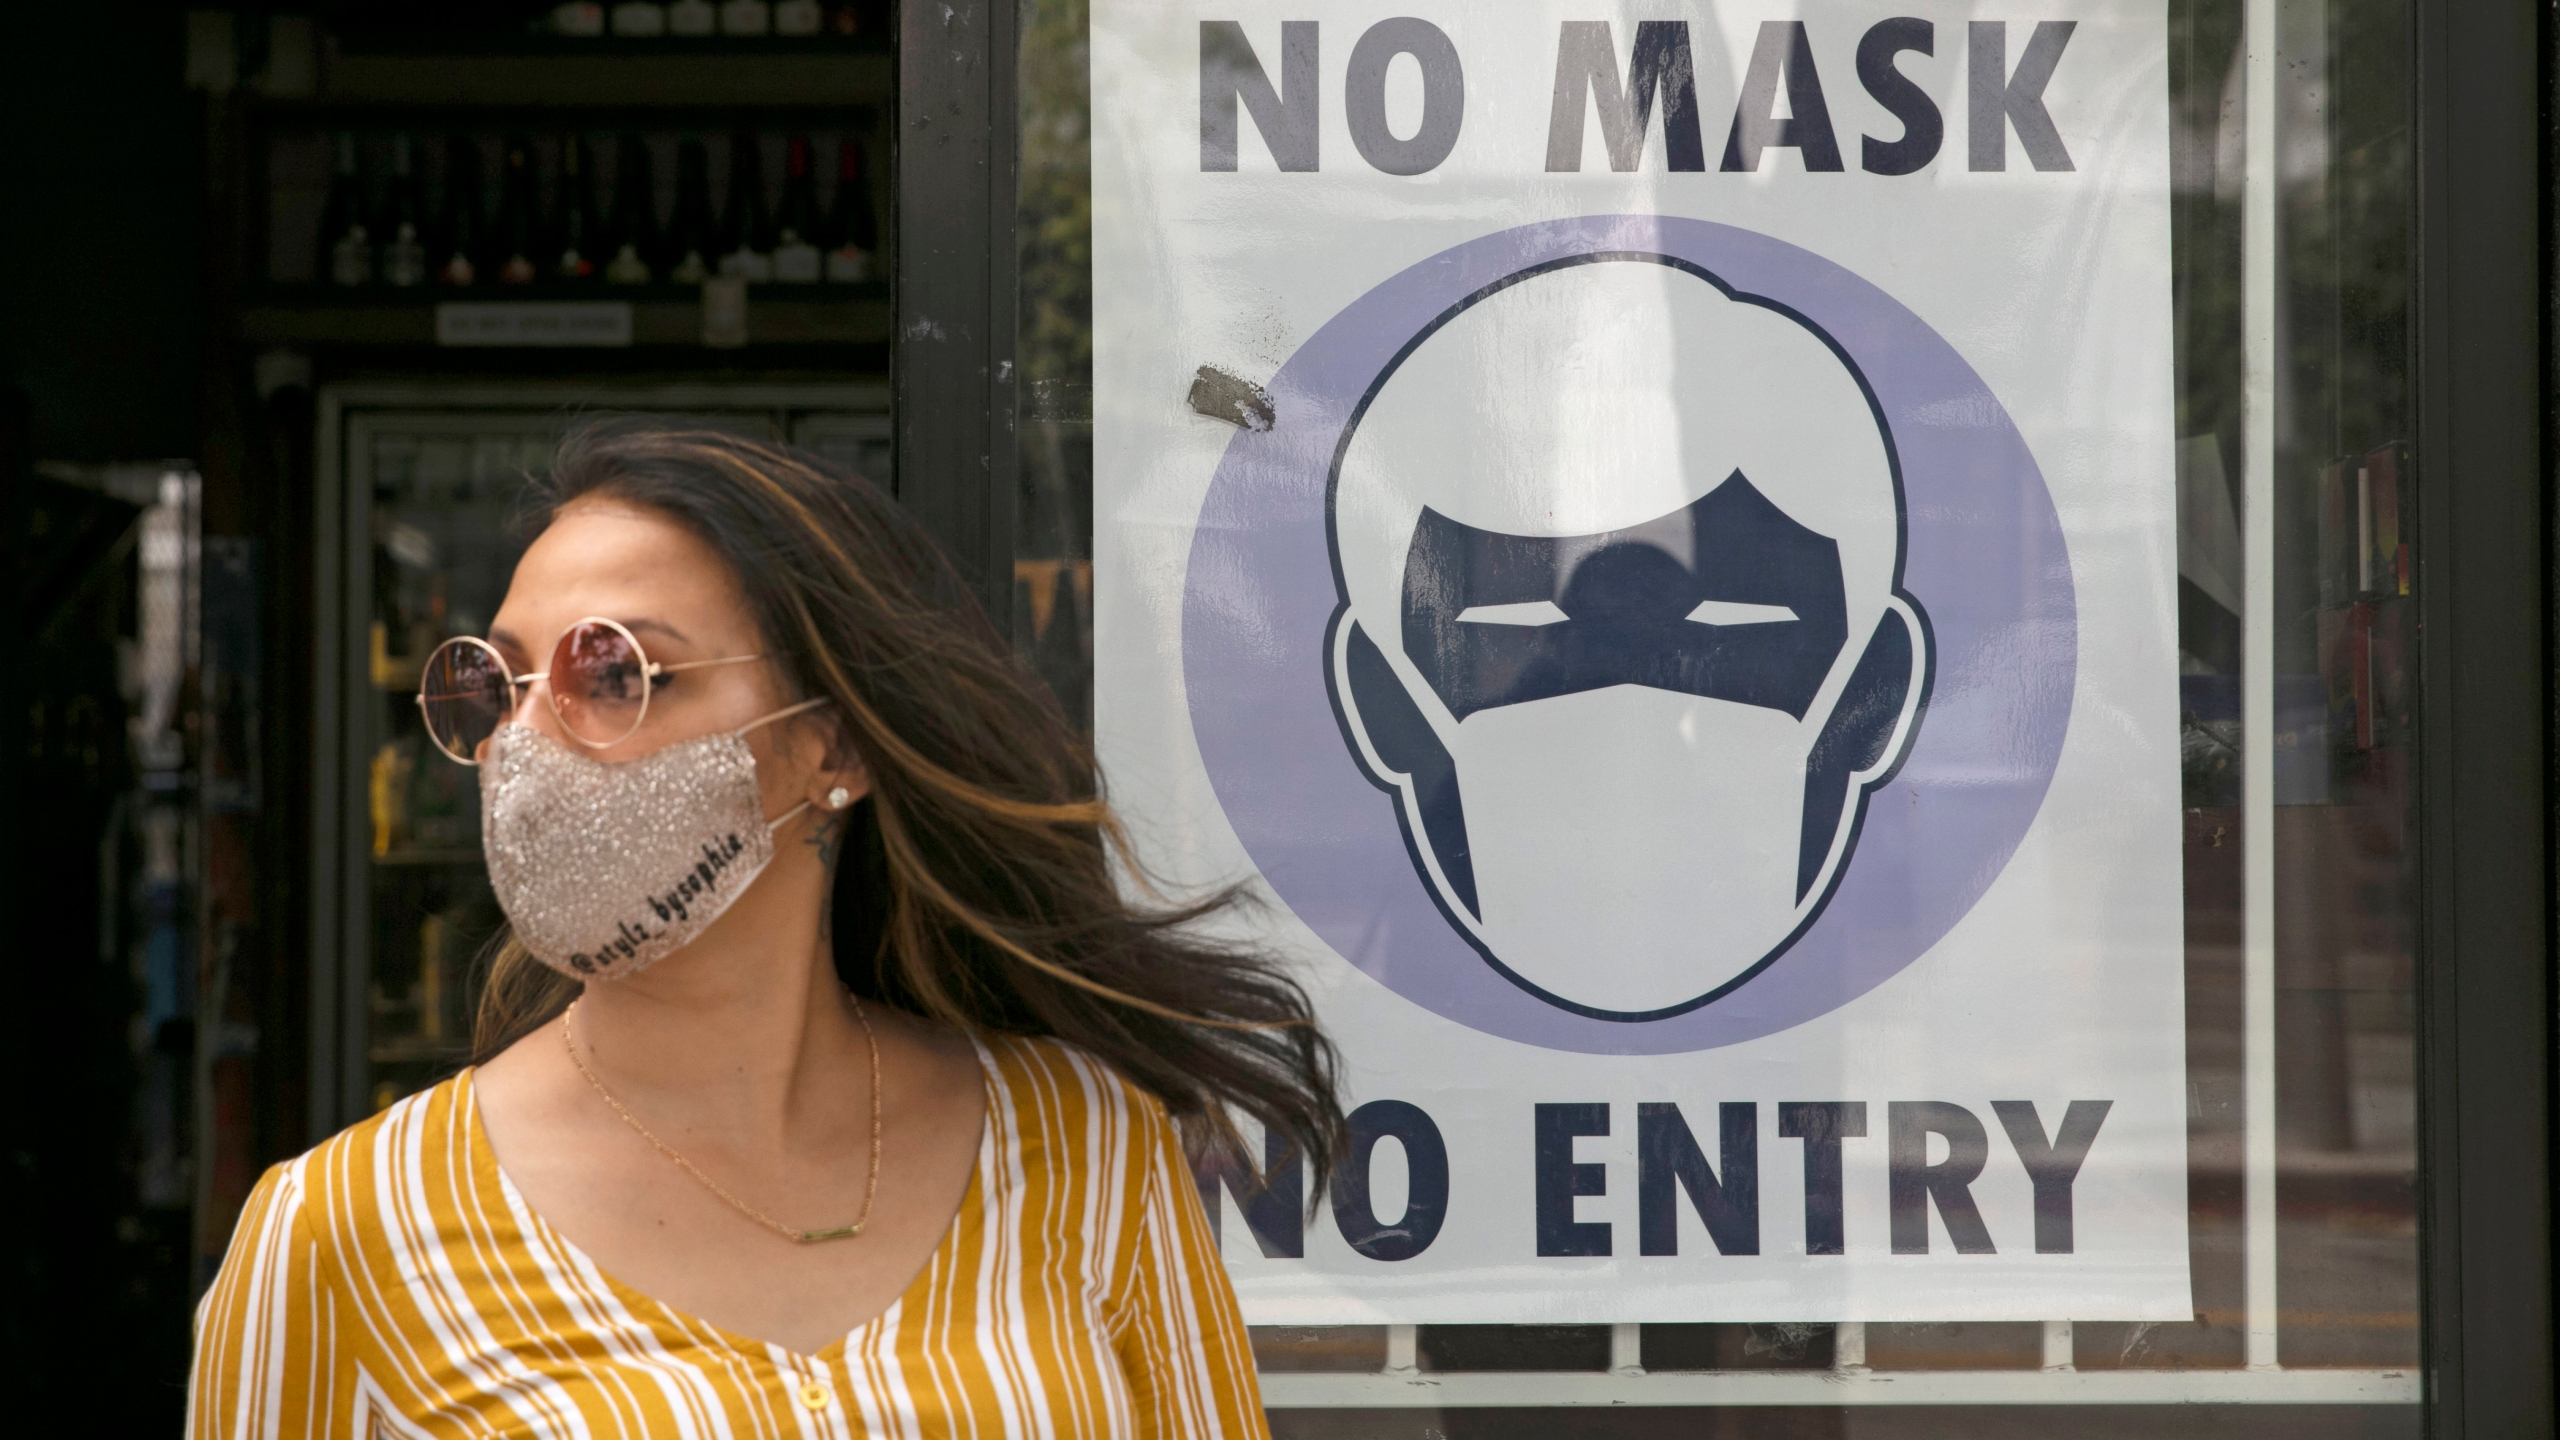 FILE - A woman walks out of a liquor store past a sign requesting its customers to wear a mask Tuesday, June 23, 2020, in Santa Monica, Calif. According to a new poll, Americans overwhelmingly are in favor of requiring people to wear masks around other people outside their homes, reflecting fresh alarm over spiking infection rates. The poll also shows increasing disapproval of the federal government's response to the pandemic. California is among the states seeing the greatest surge in cases now. (AP Photo/Jae C. Hong, File)